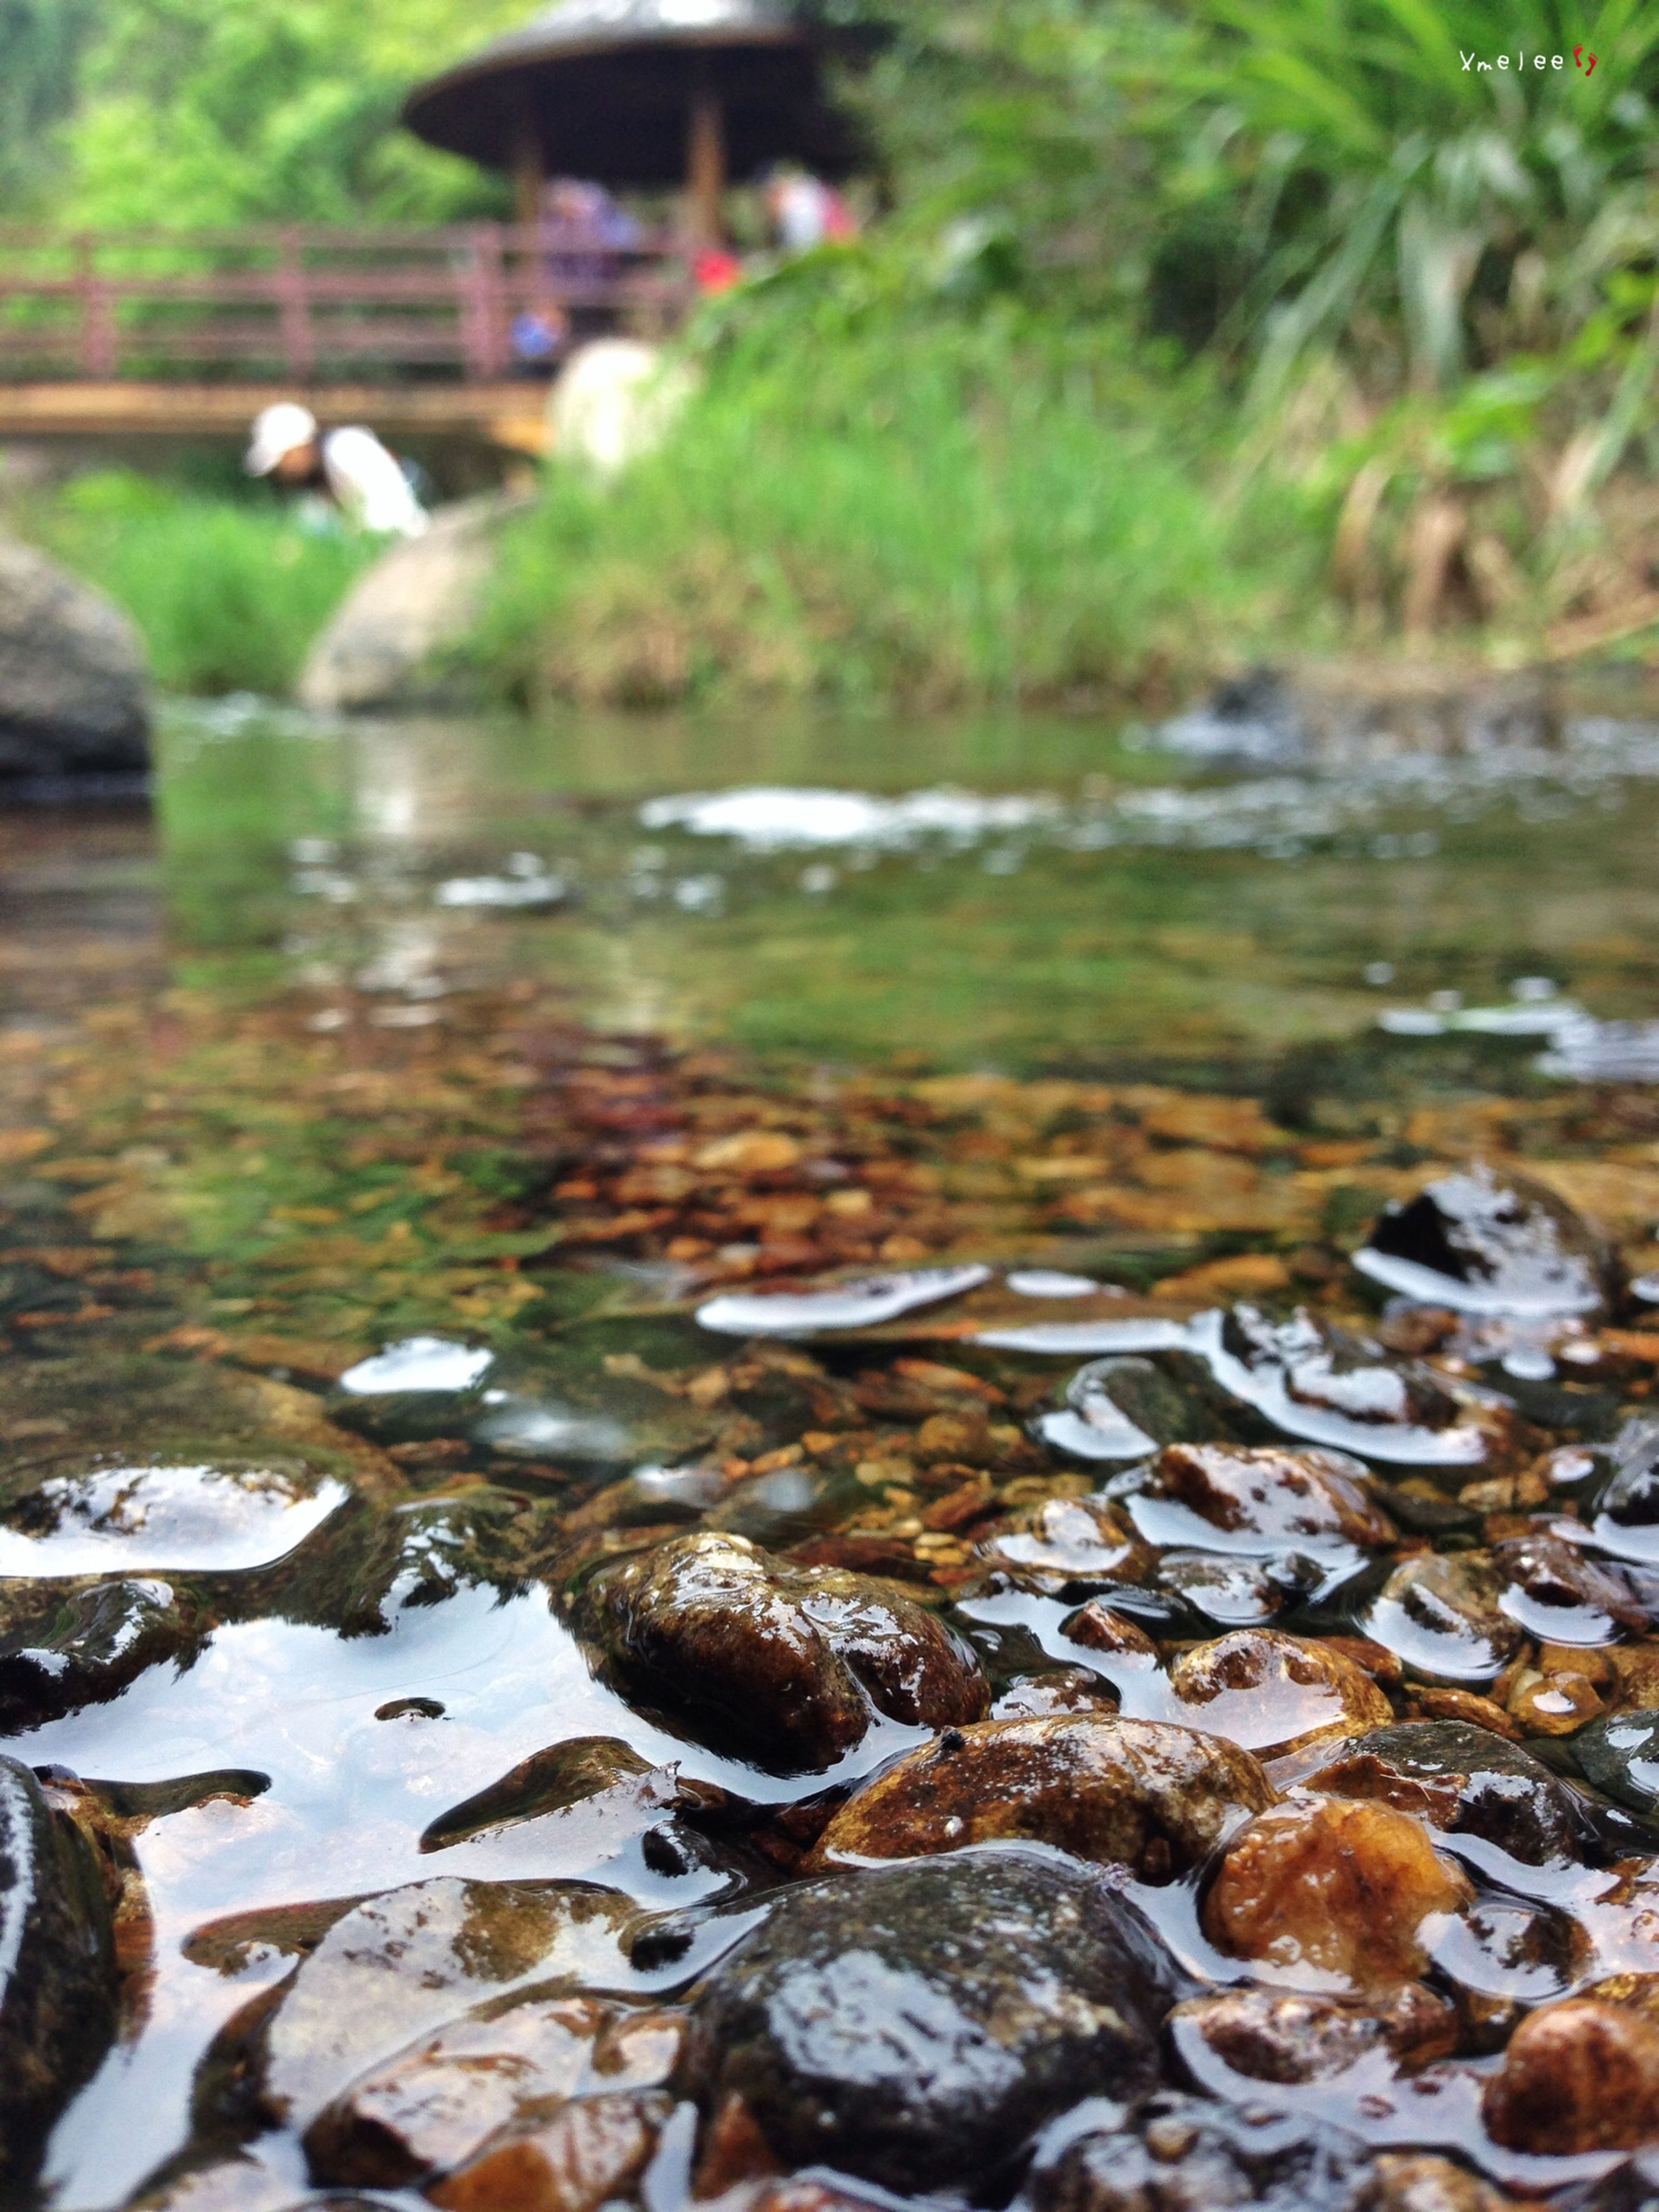 water, rock - object, surface level, stone - object, nature, selective focus, stone, focus on foreground, stream, tranquility, river, outdoors, beauty in nature, day, no people, close-up, rock, flowing, pebble, pond